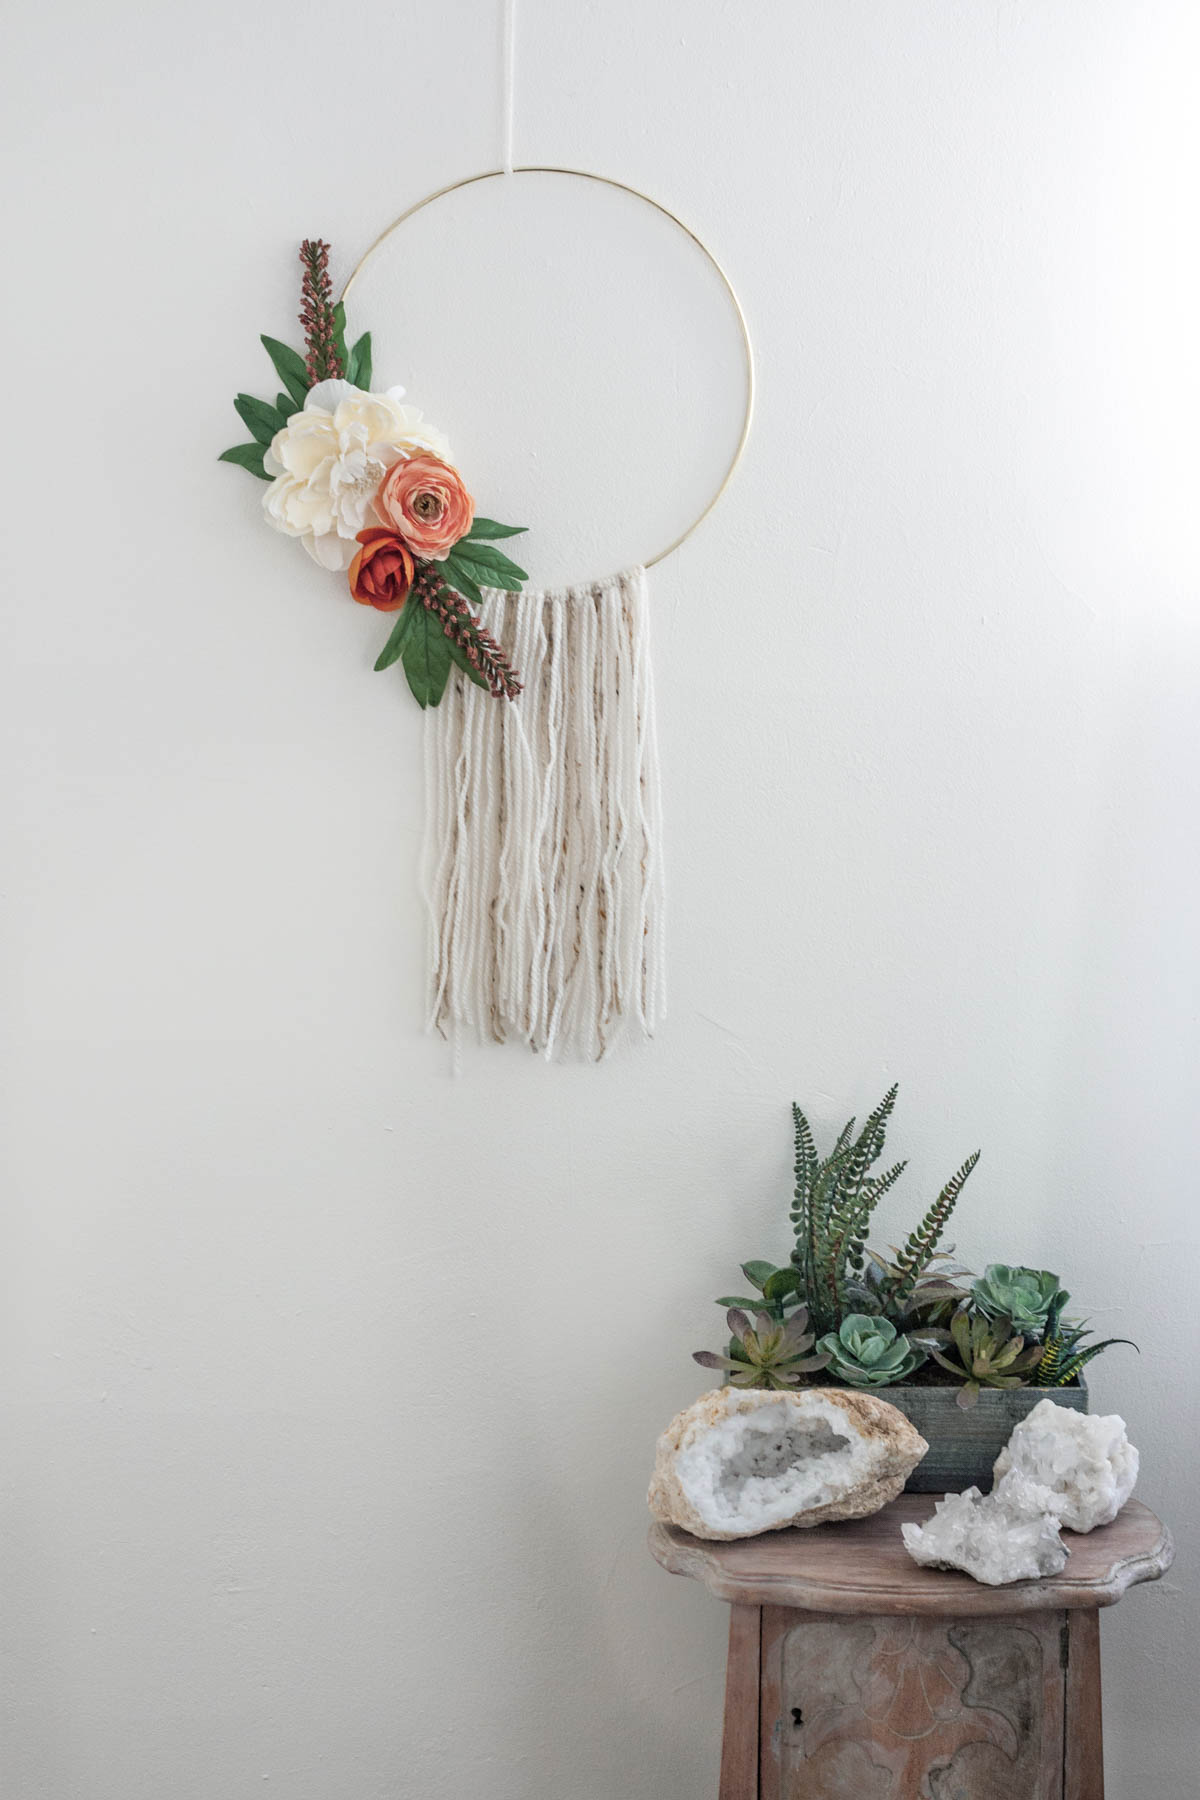 Modern Fall Wreath - Floral Hoop Wreath